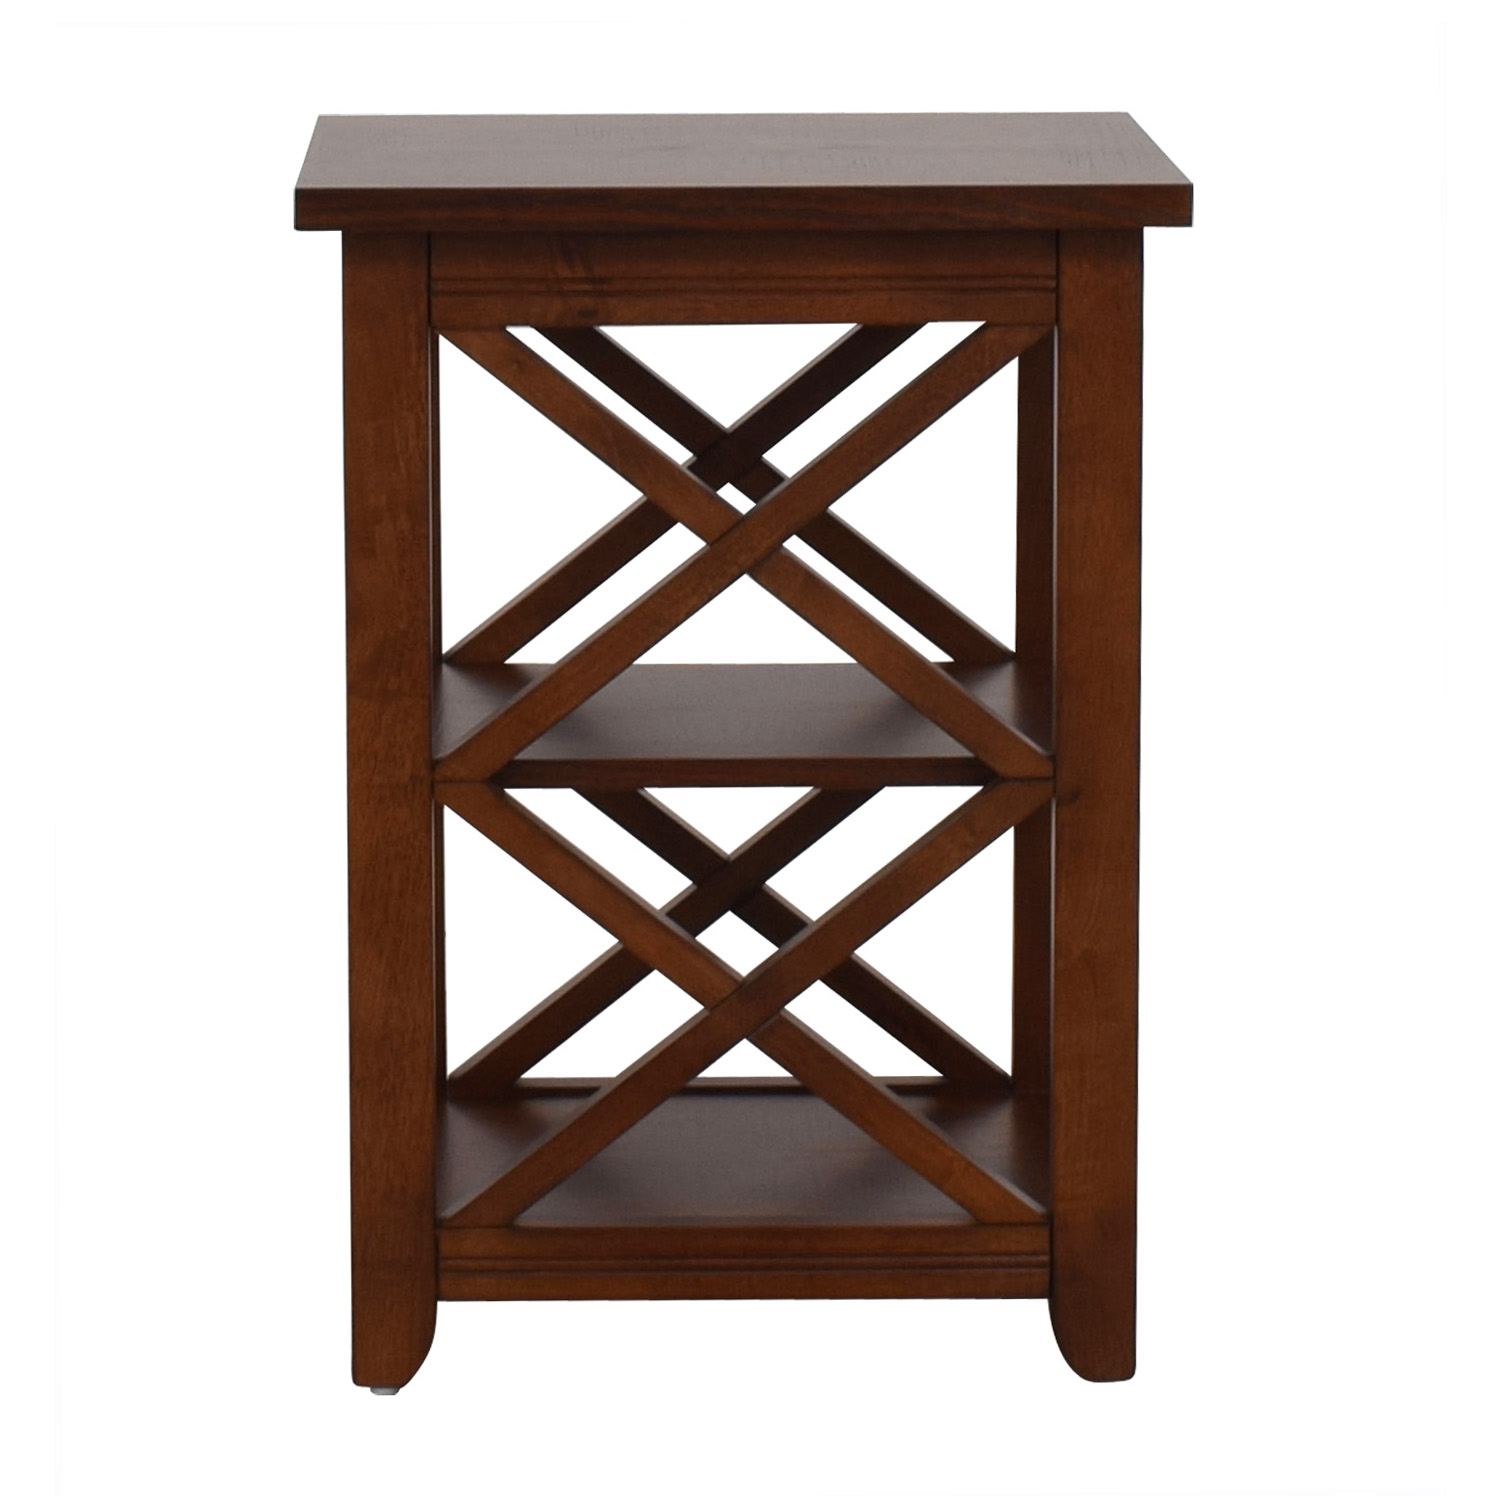 shop Raymour & Flanigan Raymour & Flanigan Tucson Side Table online